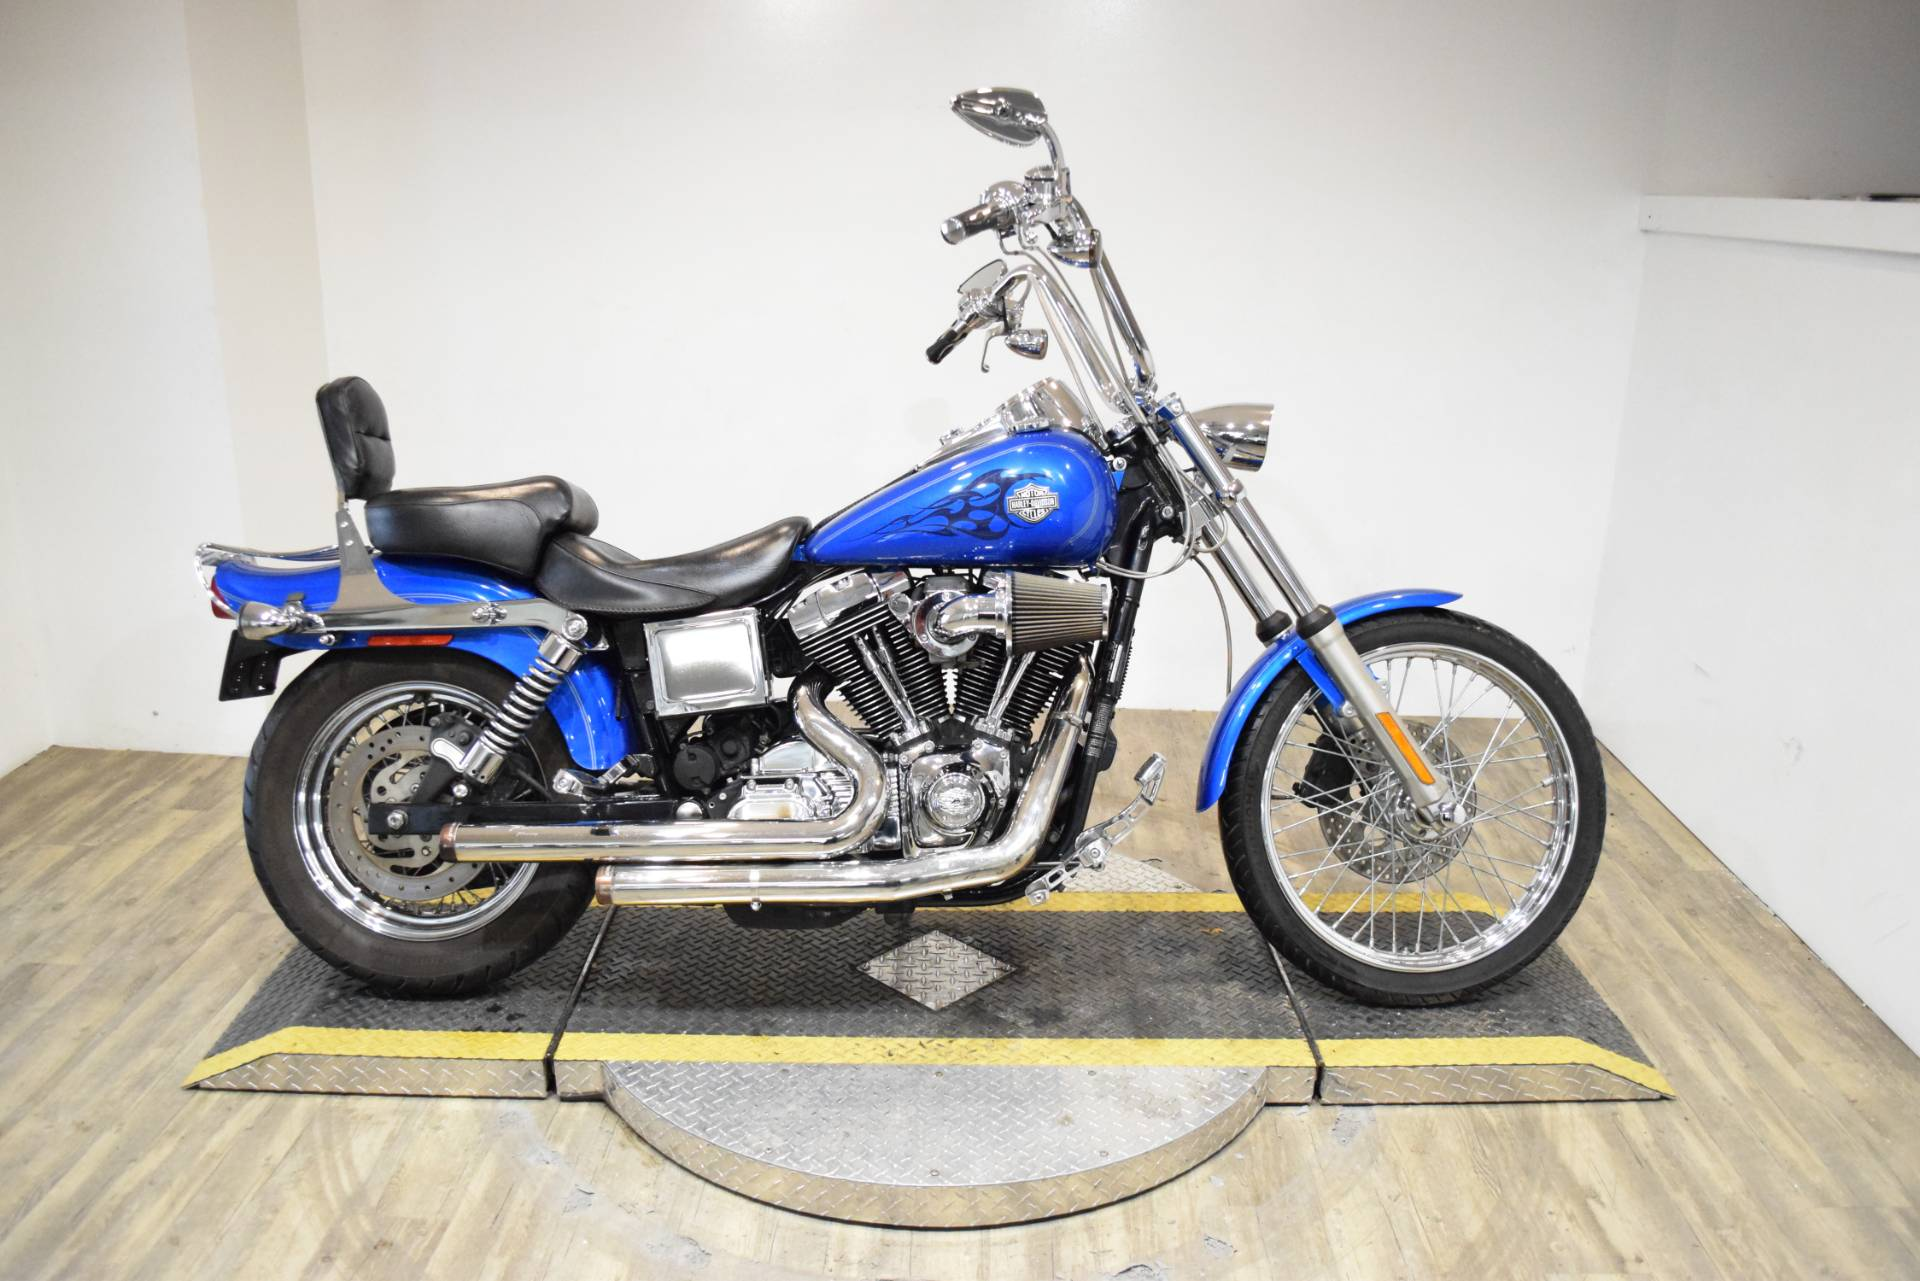 2004 Harley-Davidson FXDWG/FXDWGI Dyna Wide Glide® in Wauconda, Illinois - Photo 1